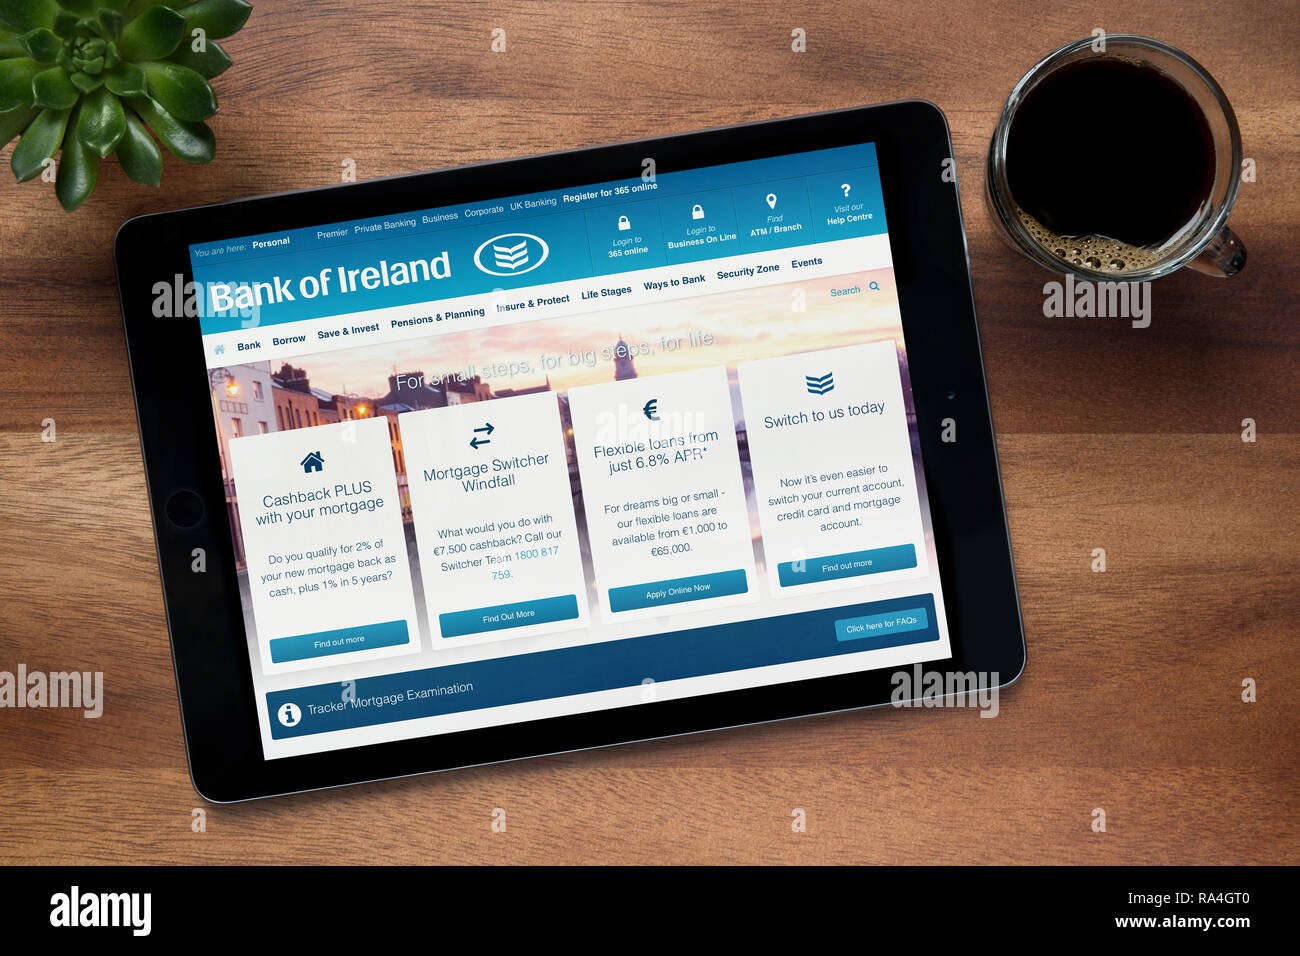 The website of Bank of Ireland is seen on an iPad tablet, on a wooden table along with an espresso coffee and a house plant (Editorial use only). - Stock Image